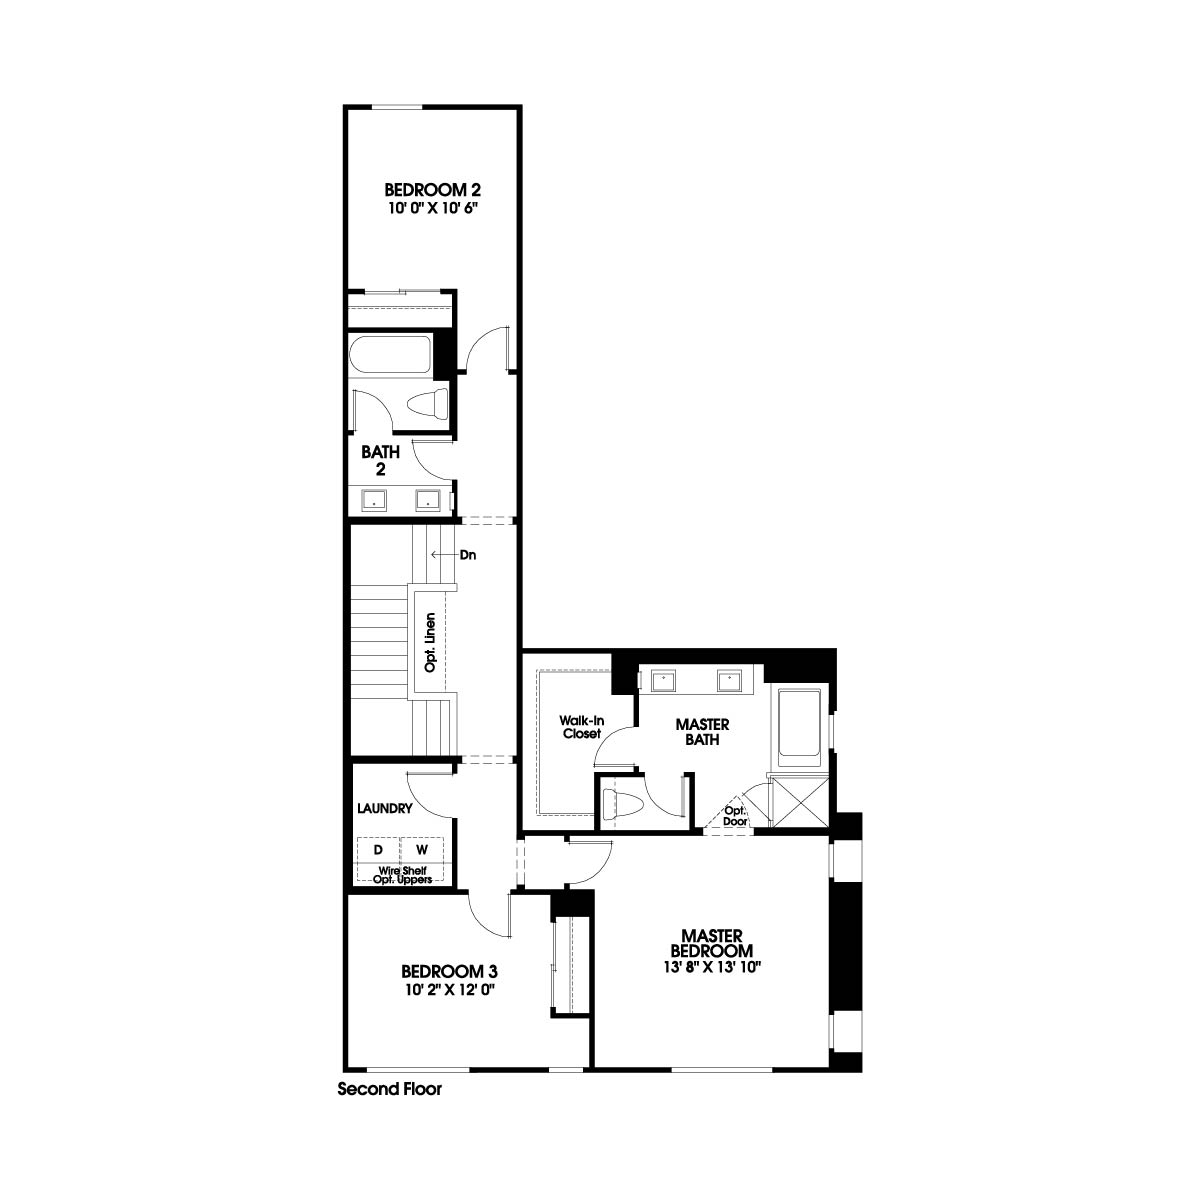 Second floor residence 6 floor plan | Holiday at New Haven in Ontario Ranch, CA | Brookfield Residential